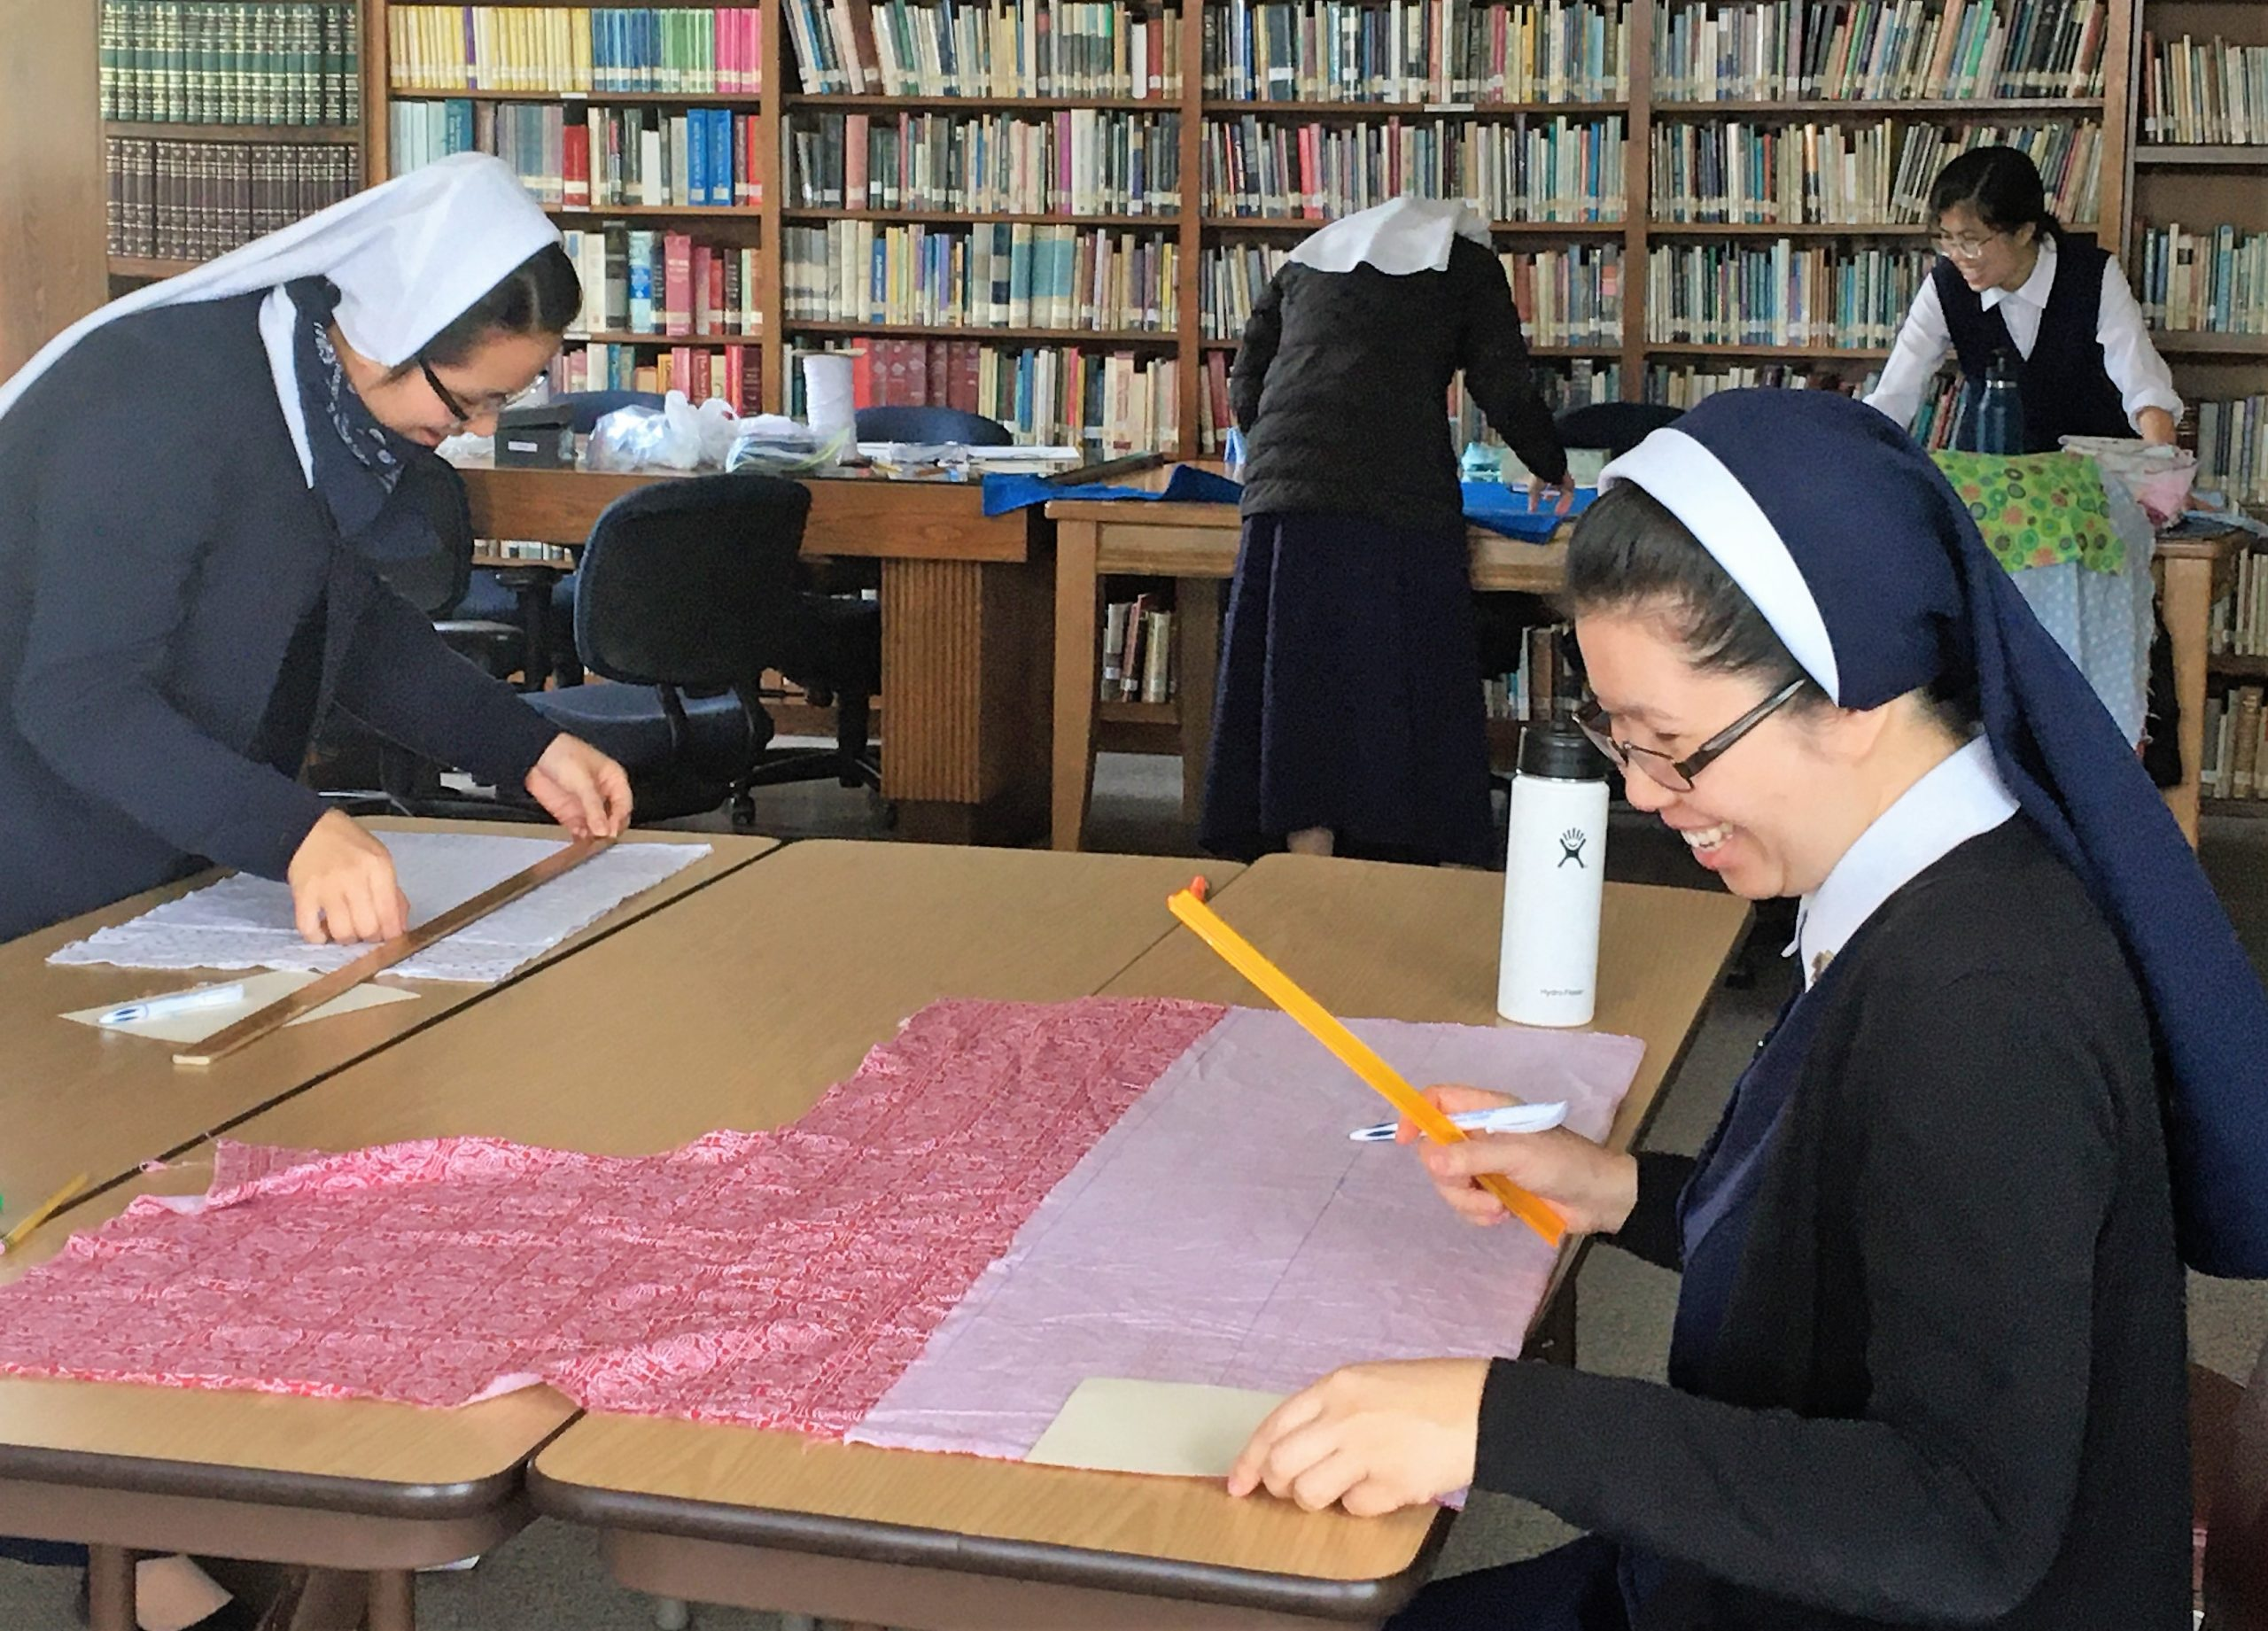 Nuns work in a library to make masks.